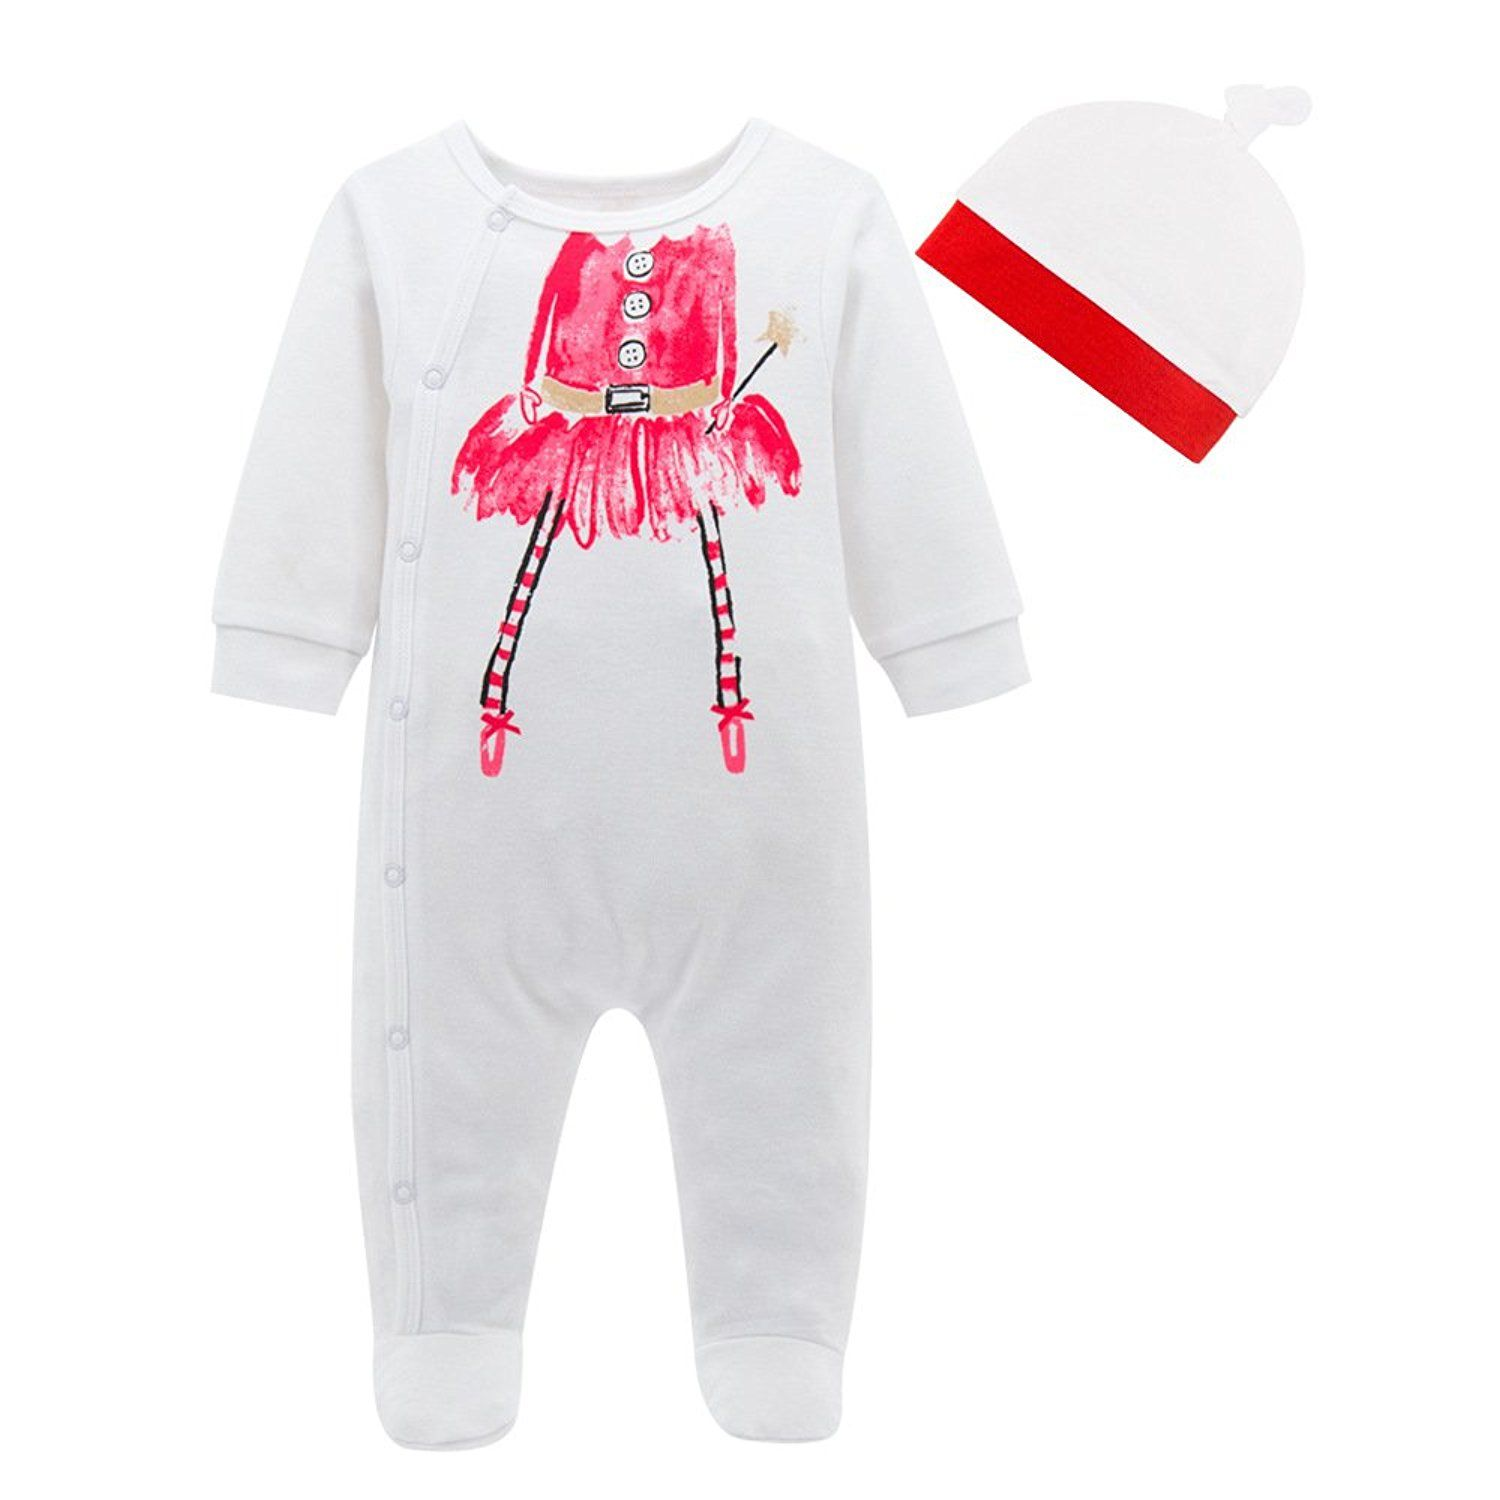 Babe Maps Uni Baby s Long Sleeve Footie Cotton